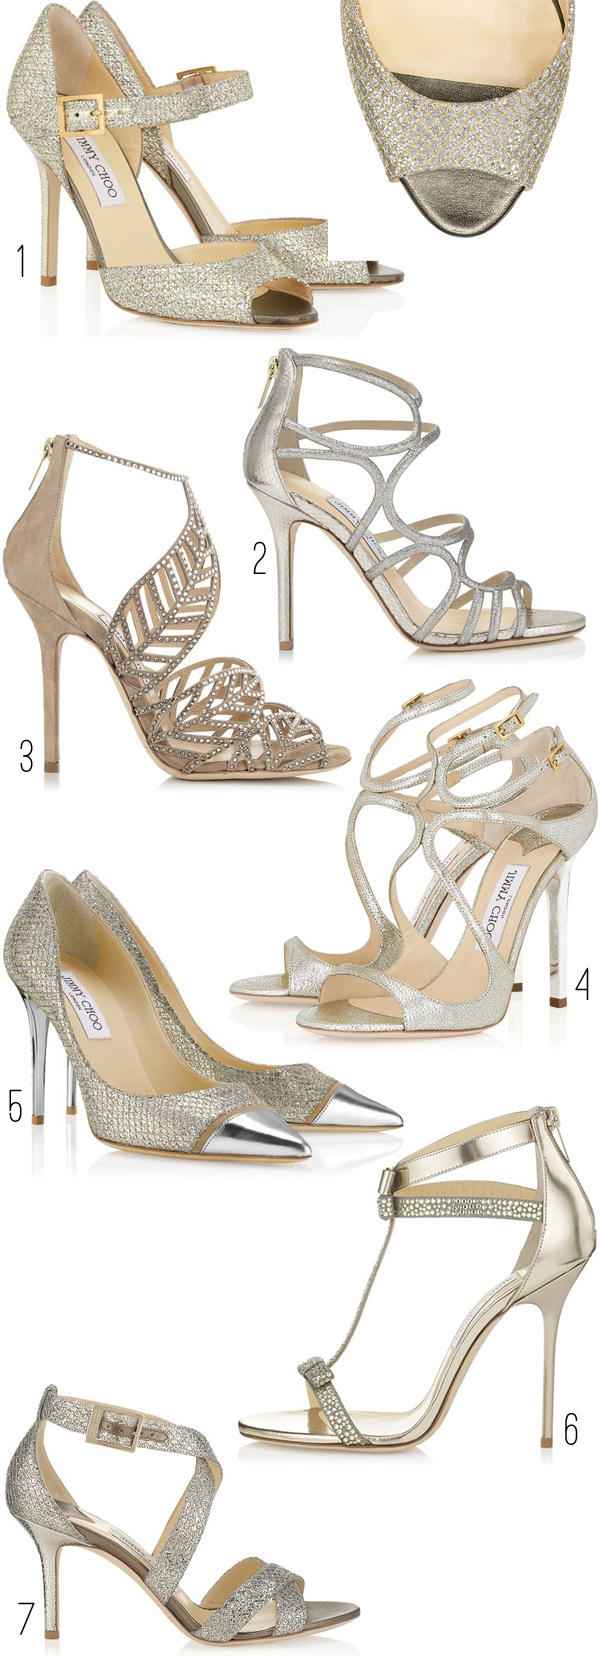 jimmy-choo-bridal-collection-2014